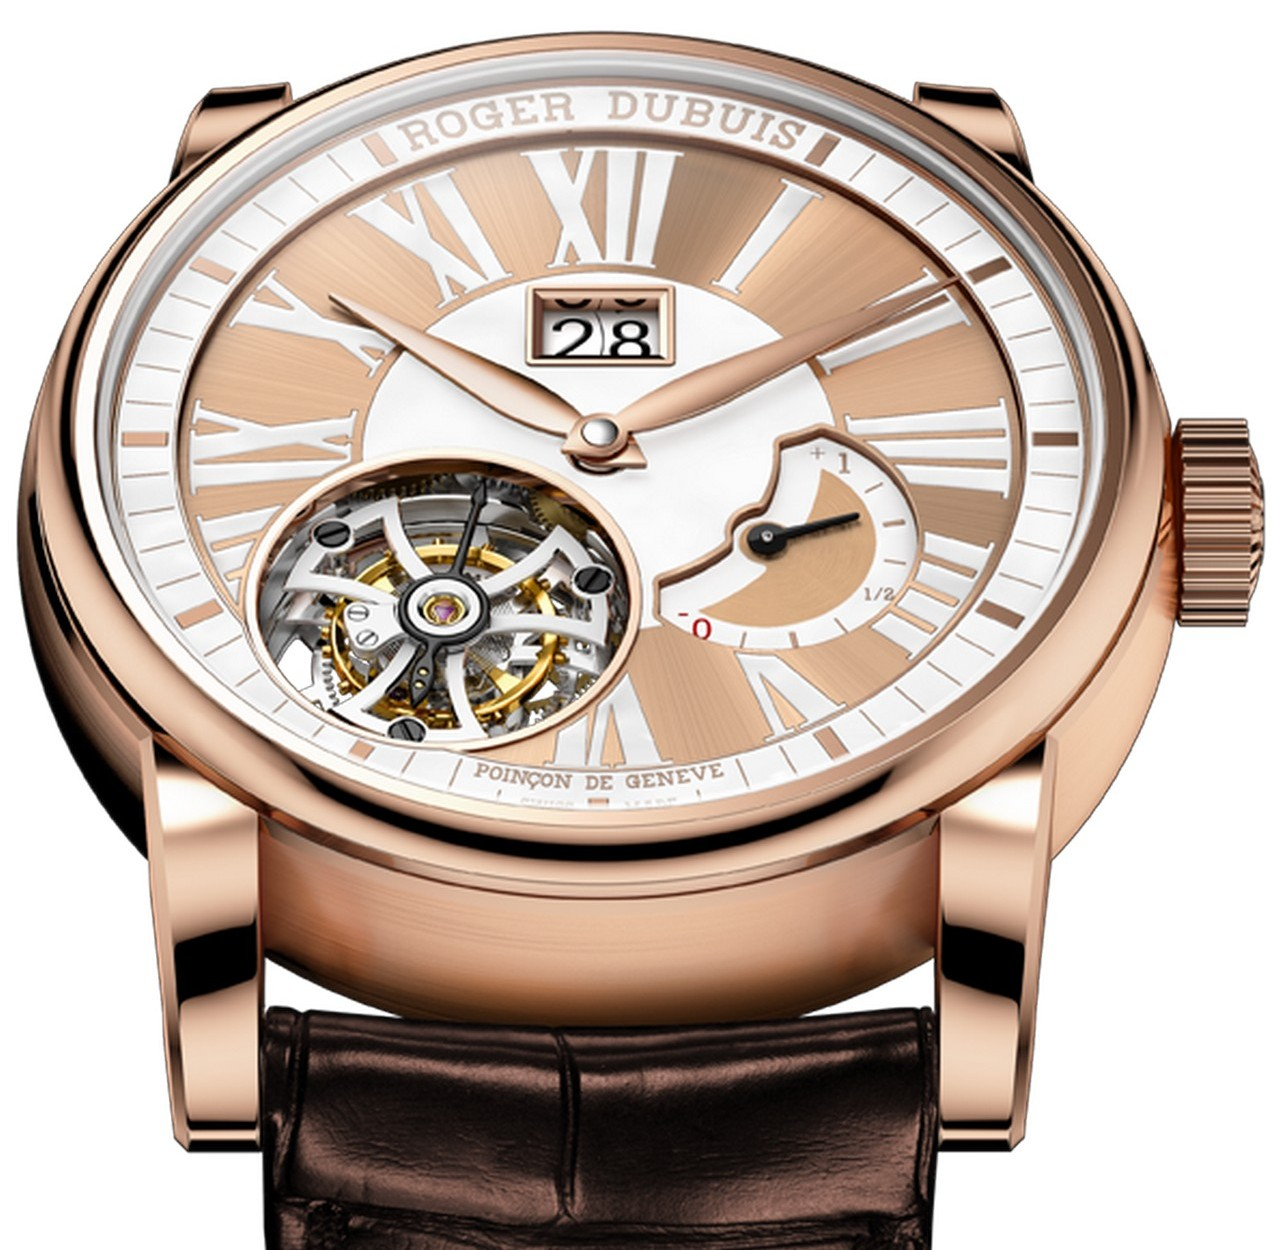 RDDBHO0568 Roger Dubuis Hommage Collection